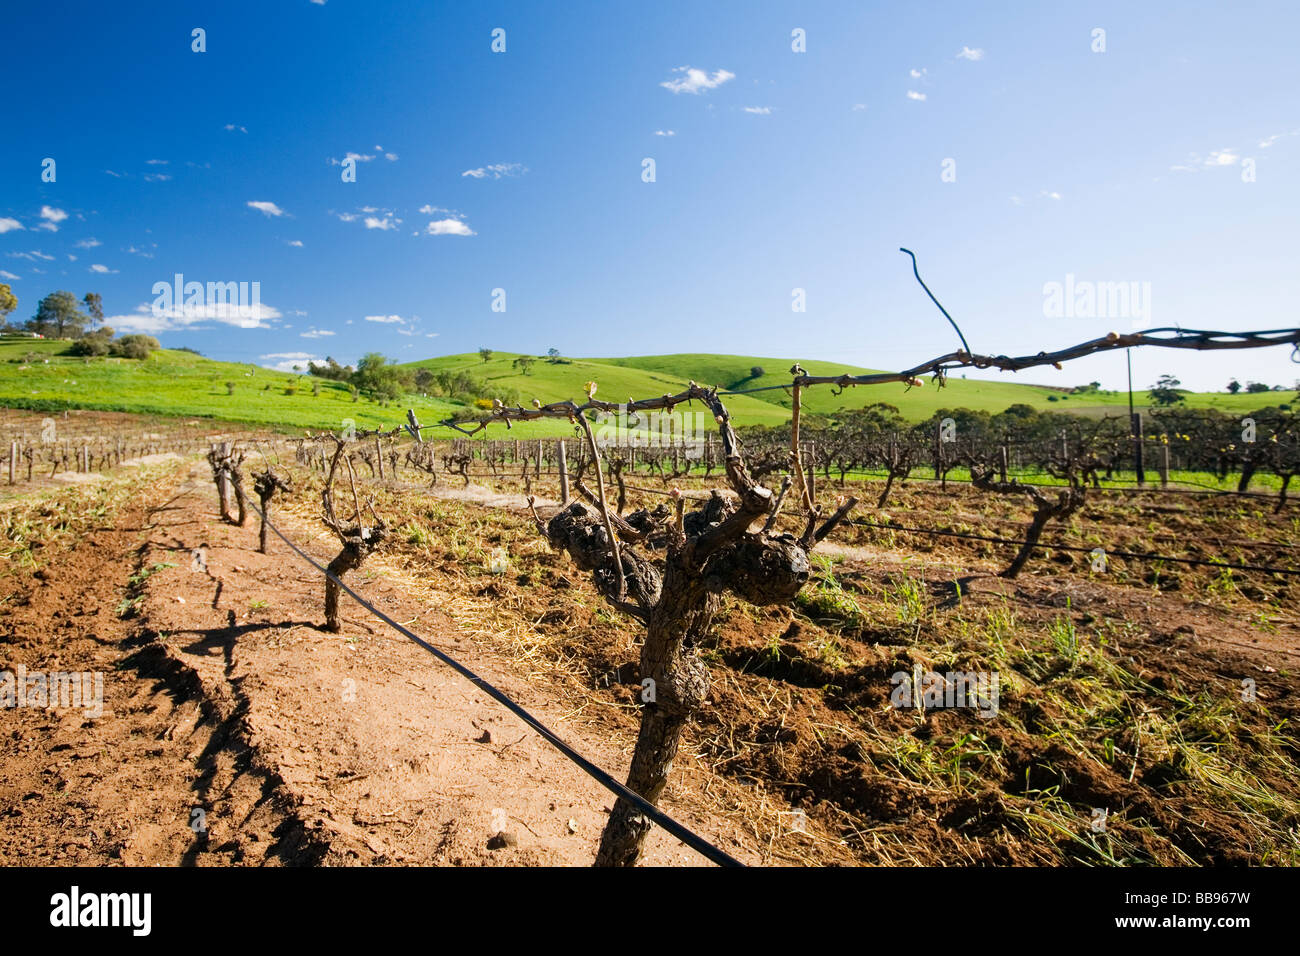 Rows of grapevines in the Barossa Valley, South Australia, AUSTRALIA - Stock Image